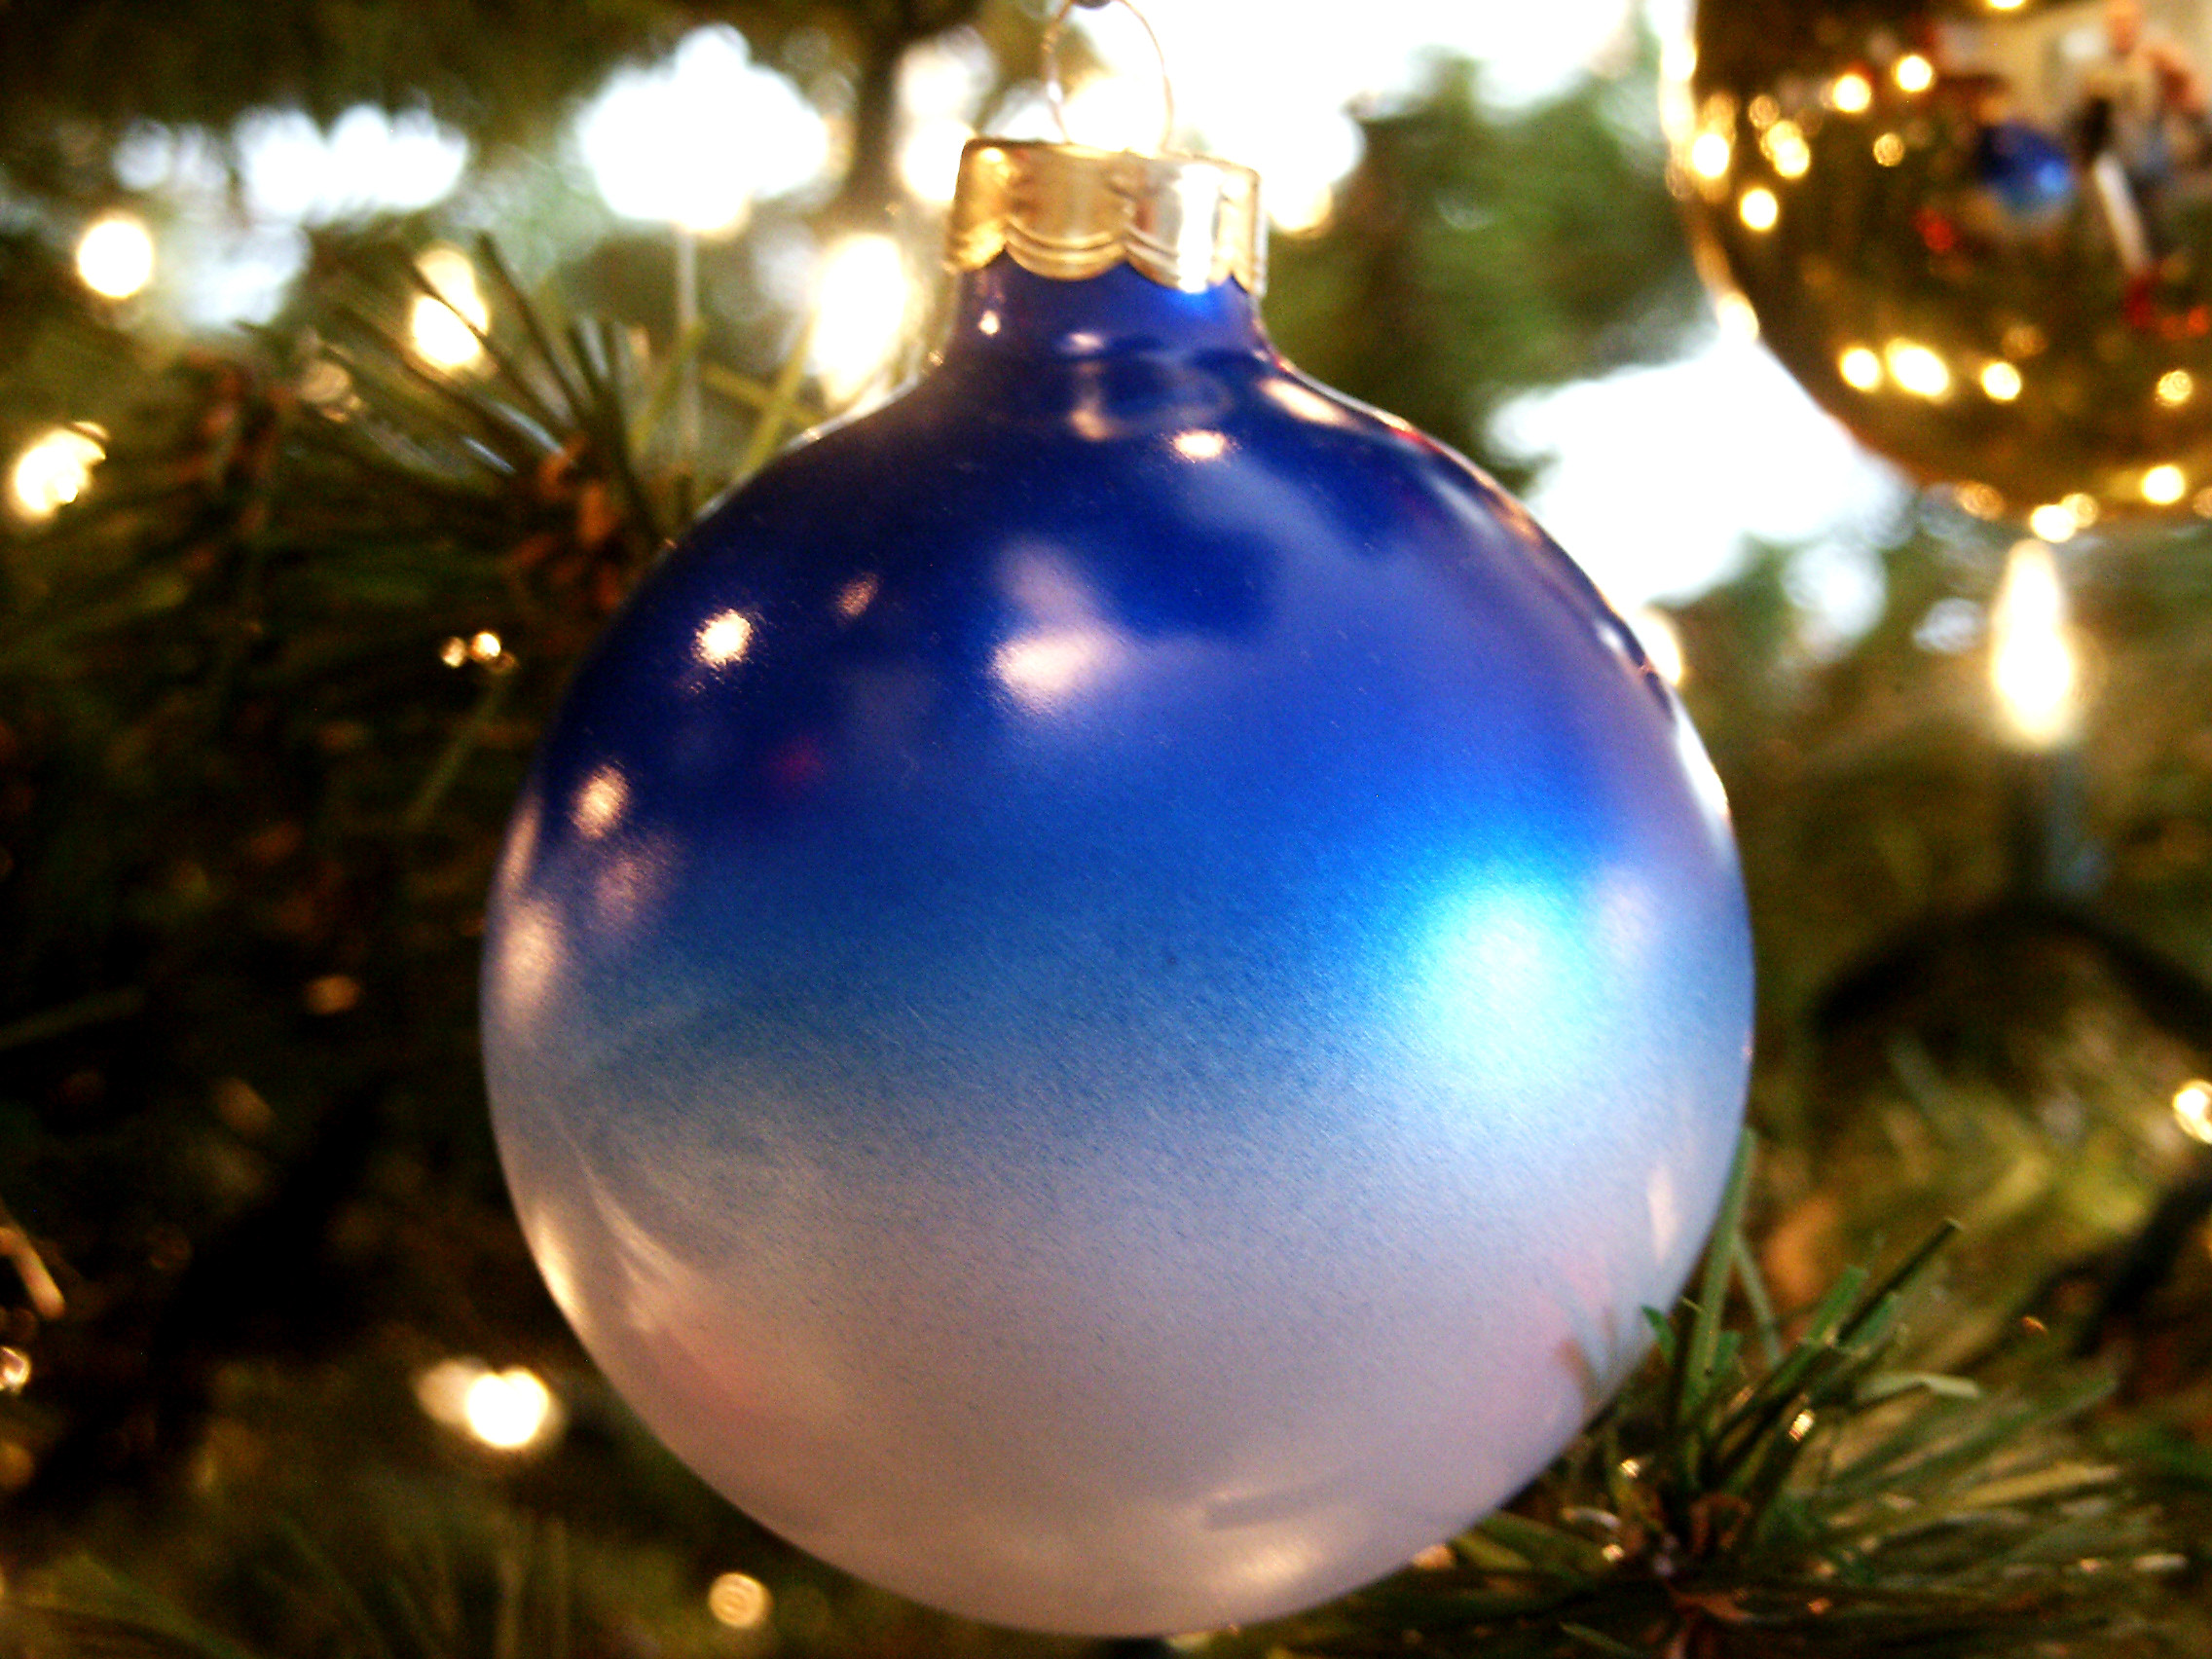 Christmas Tree ornaments Awesome Christmas Tree ornament – Happy Holidays Of Delightful 42 Pics Christmas Tree ornaments